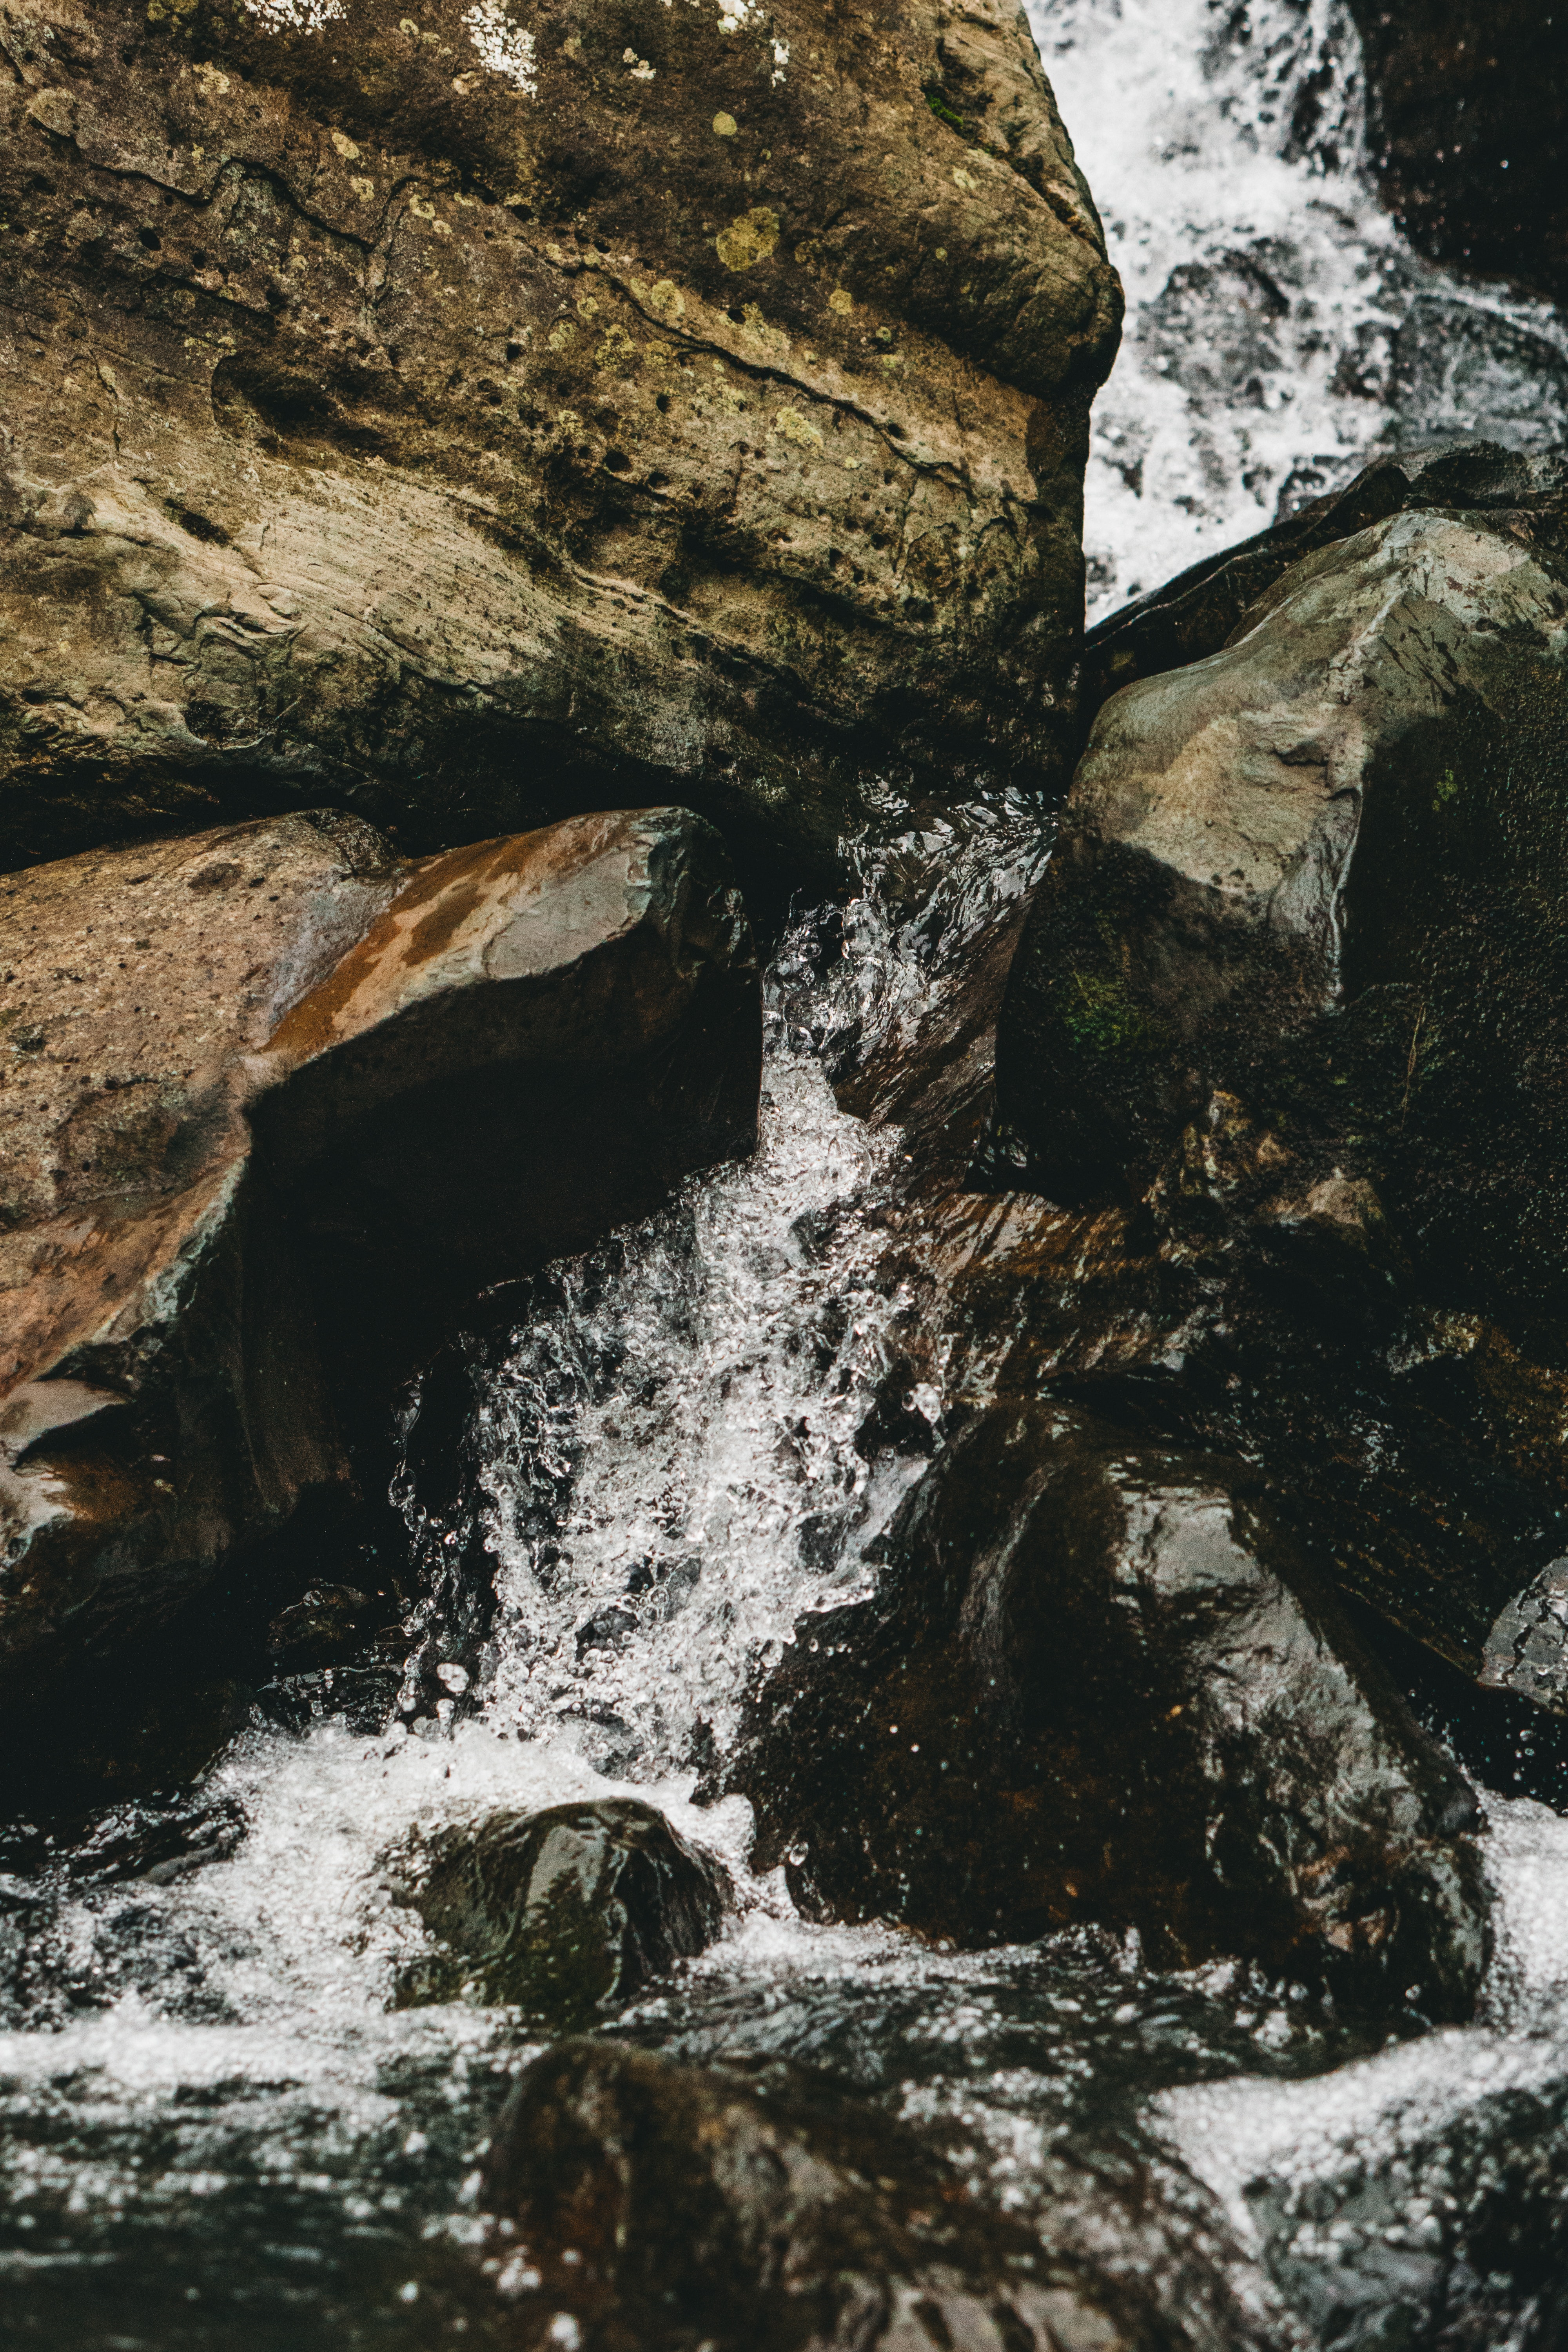 waterfalls in the middle of brown rocks